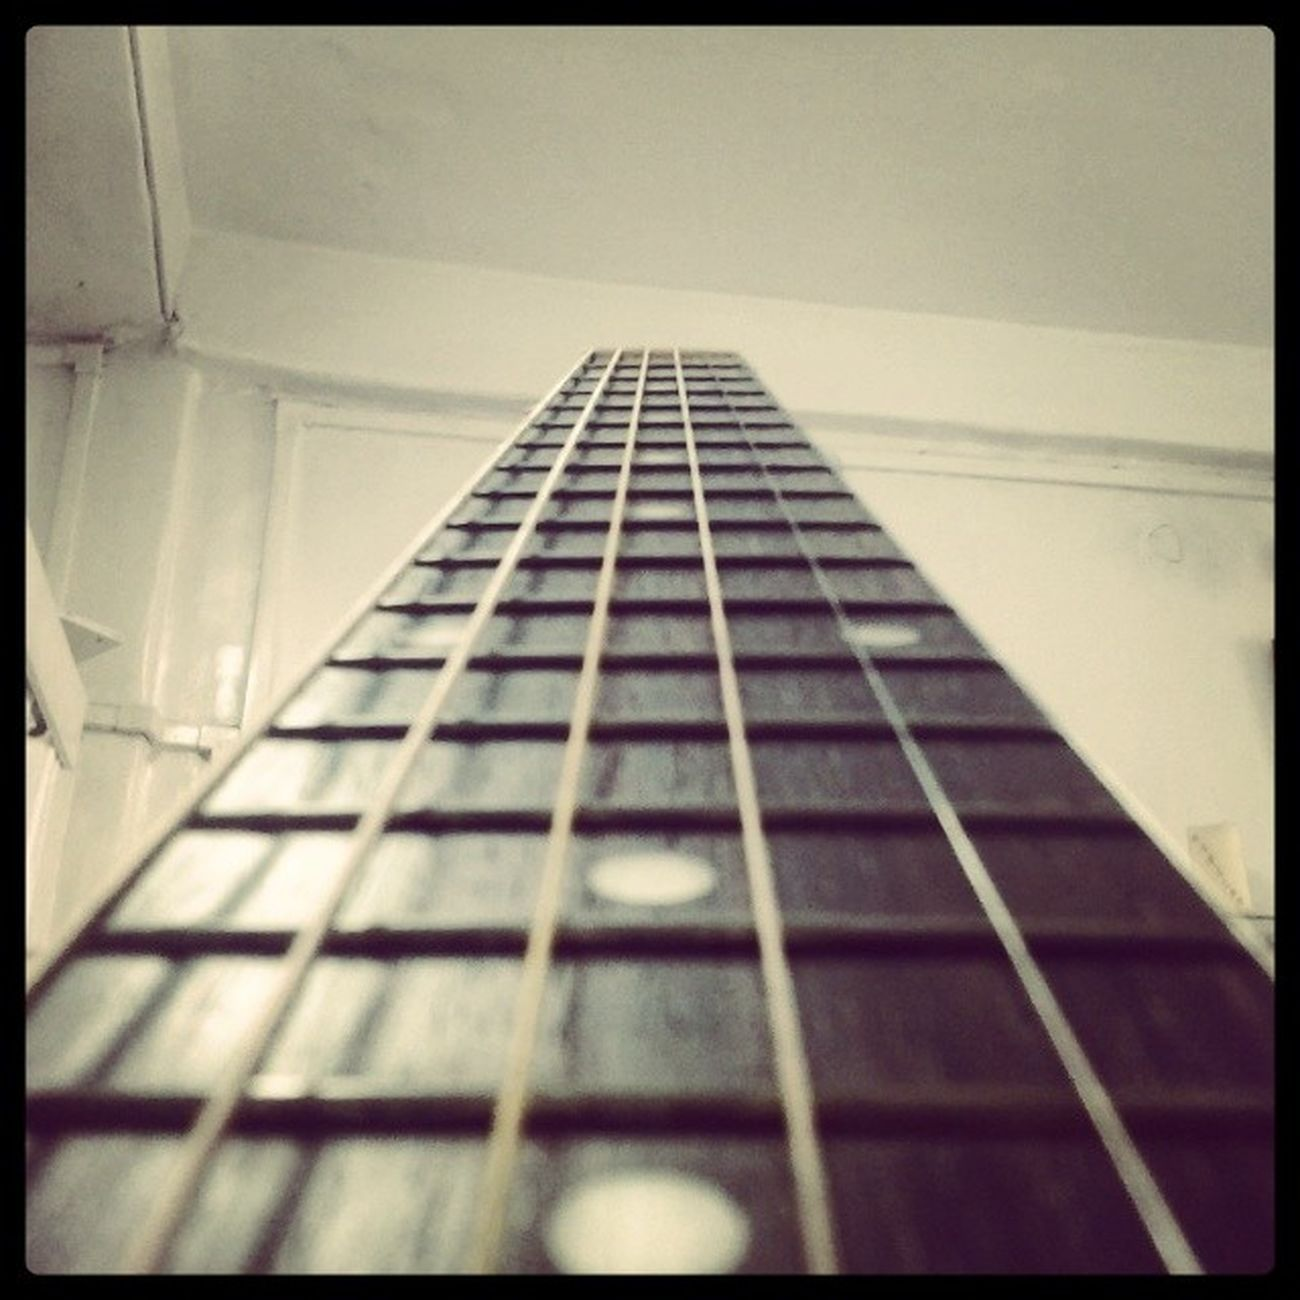 Guitar Acoustic Fretboard Barrechords Learning Music Ilovemusic Instamusic Instaguitar GBA Newstrings MusicToMyEars Instadaily Instaaddict Instafun Instastrumming Guitarstrings